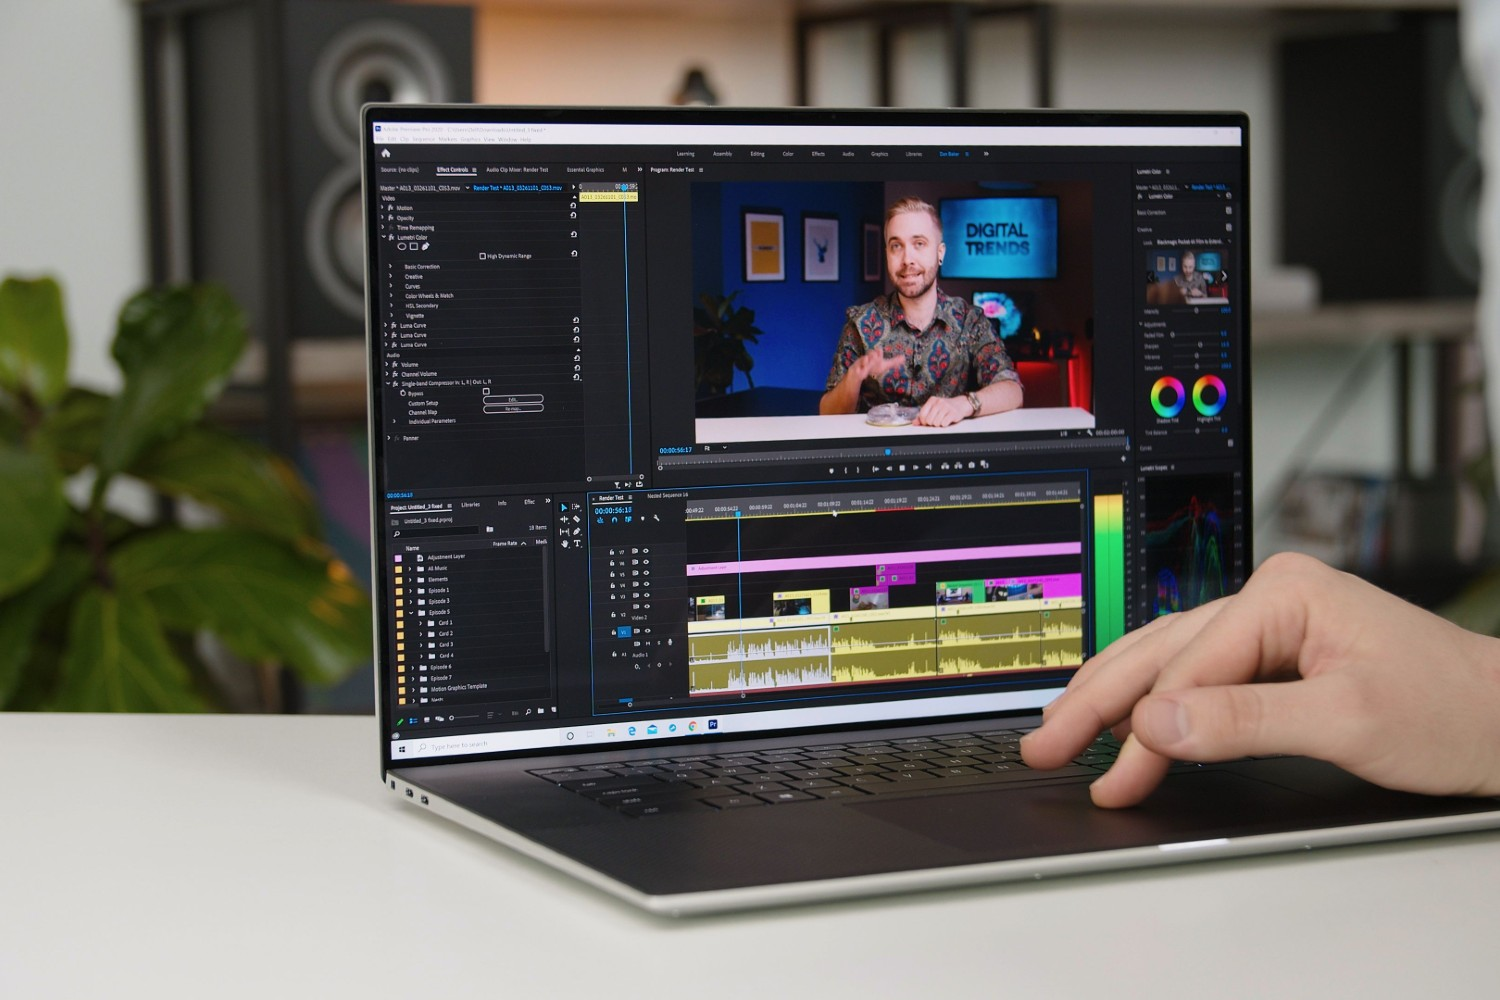 Best Laptop for Video Photo Editing